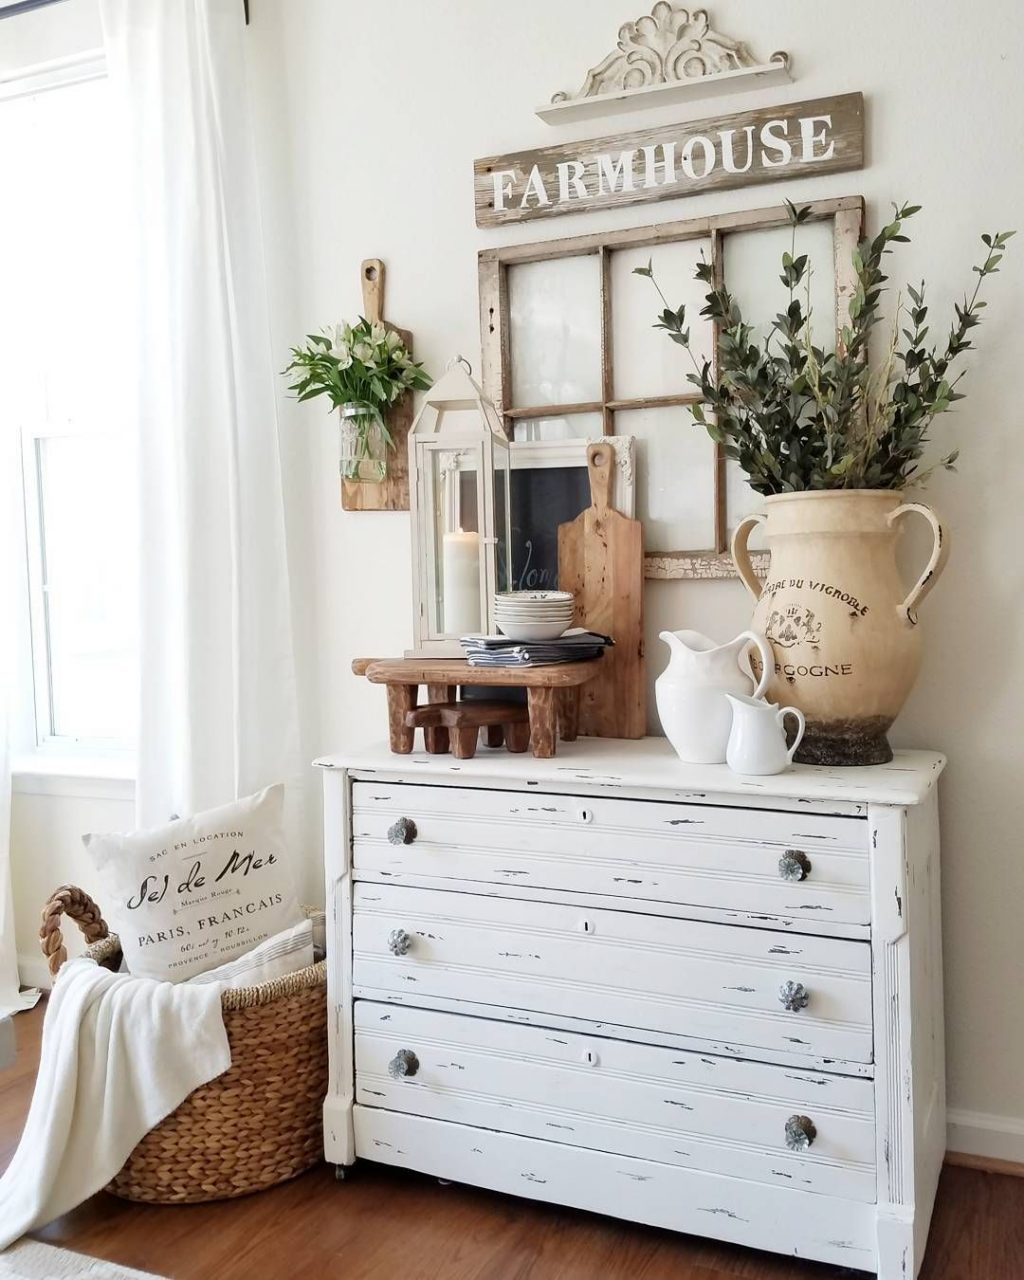 Pin Jenifer Mueller On For The Home In 2019 Spanish Home Decor